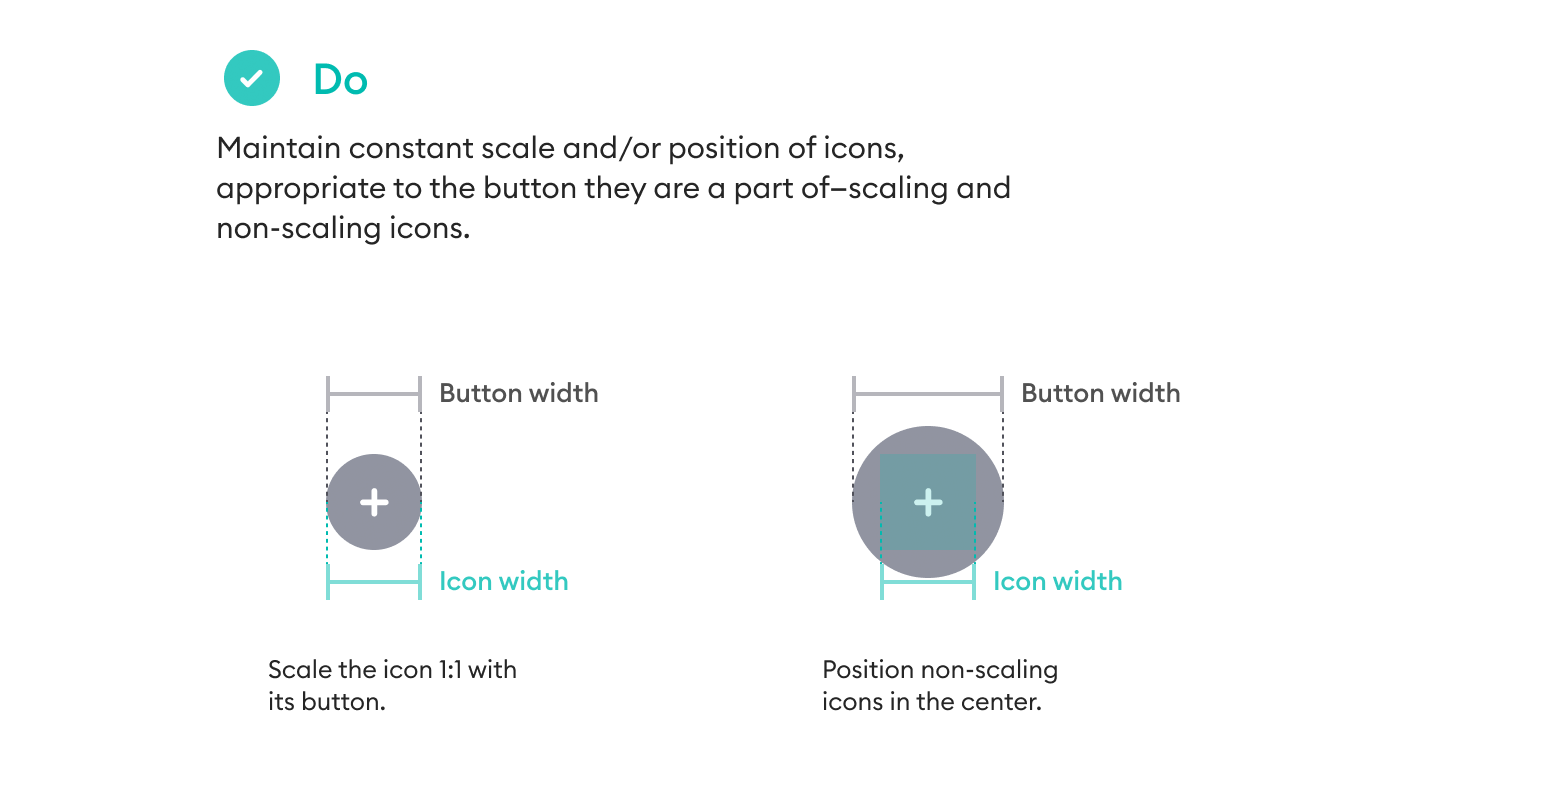 Buttons & rules. - Before the design system, we had no fewer than 20 button types. It was confusing. We consolidated to three button types, and added a bunch of rules on how they could be used.